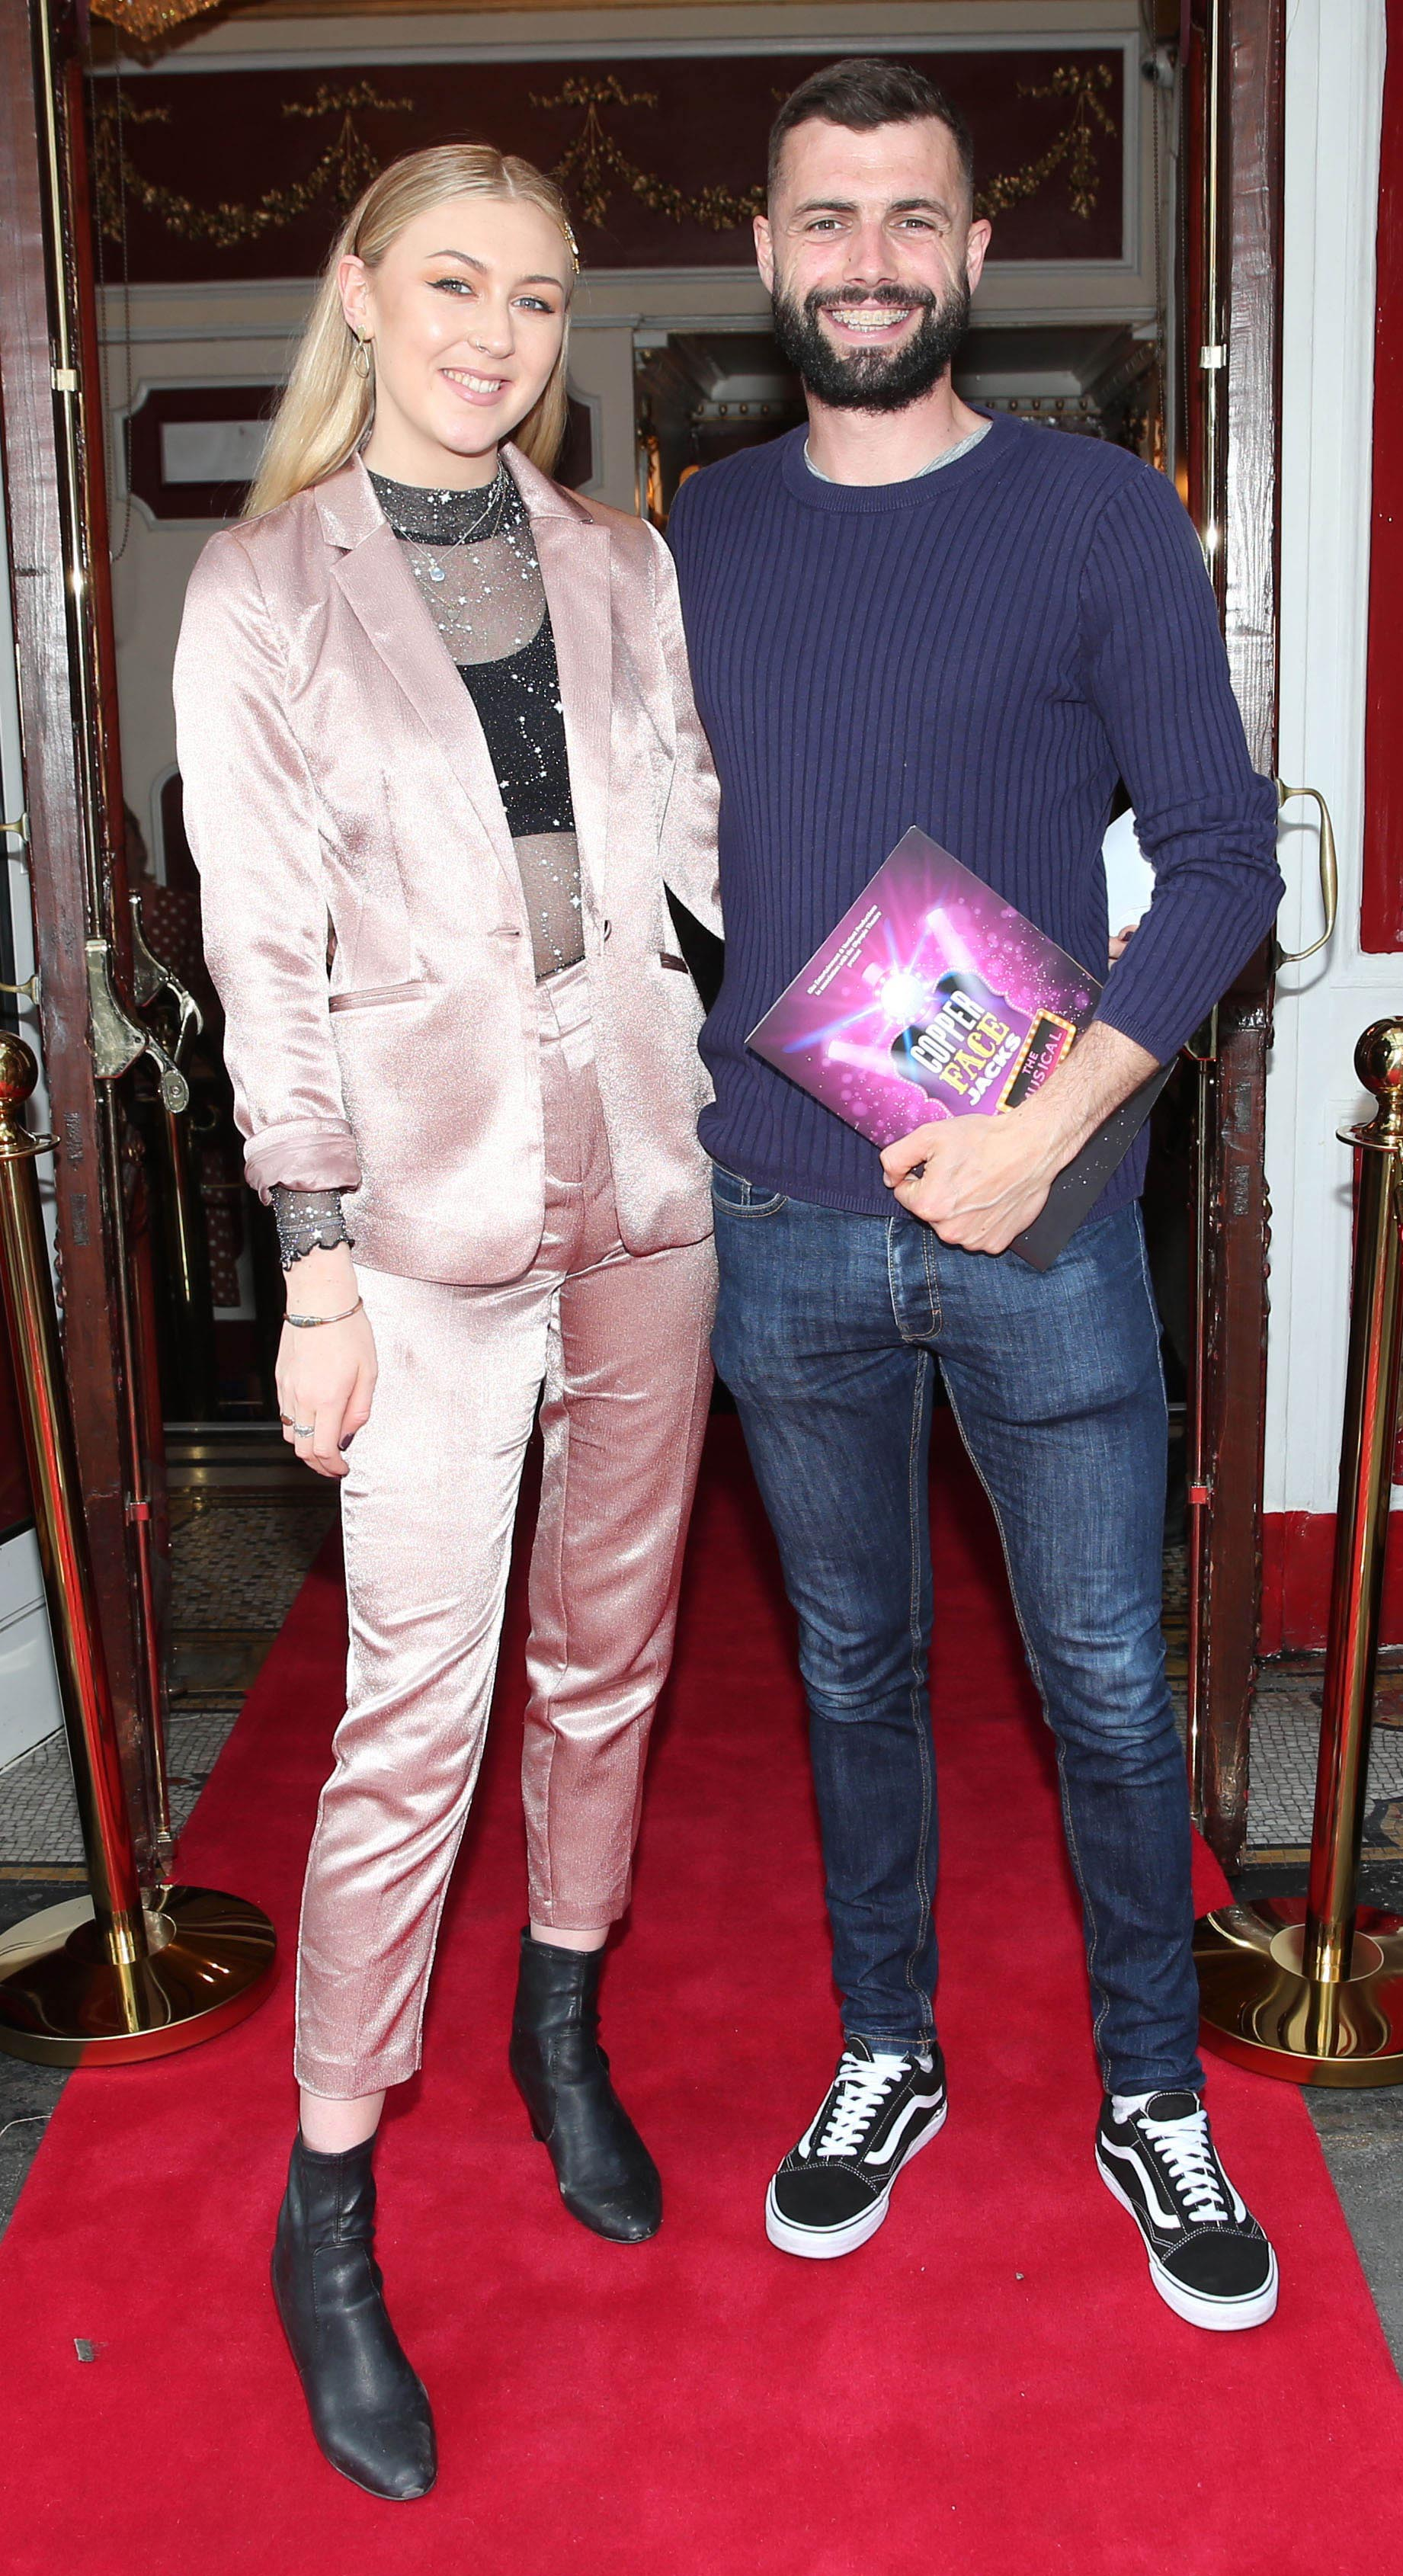 Eadaoin Fitzmaurice and John Sharpson at the opening night of  Copper Face Jacks The Musical at  the Olympia Theatre which  runs until the 10th August.Photo: Leon Farrell/Photocall Ireland.